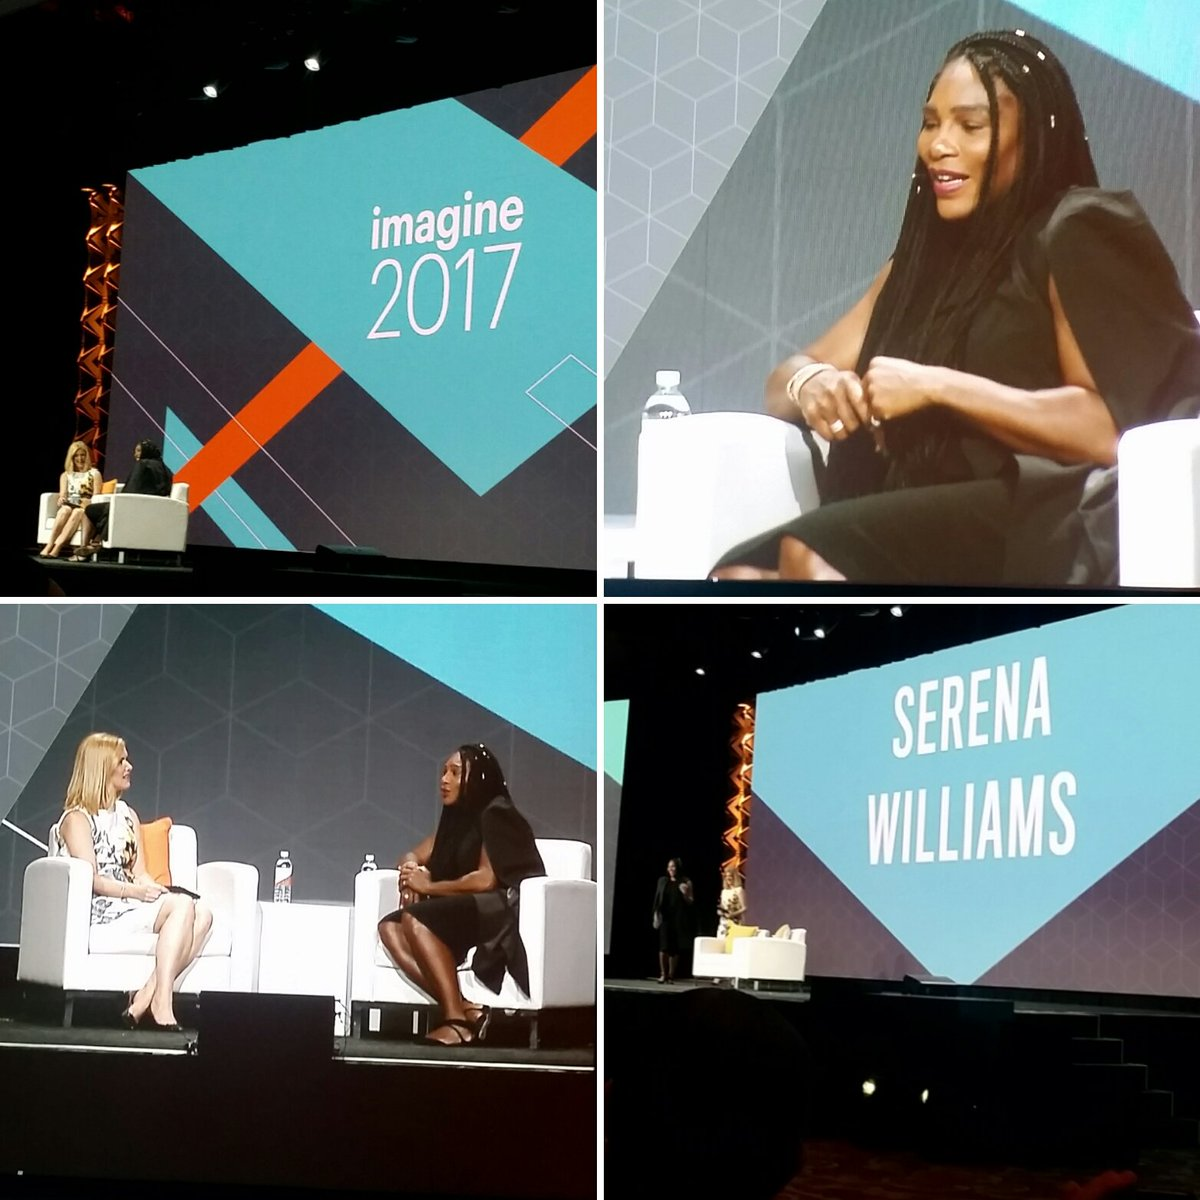 Tryzens: Hearing @serenawilliams talking to @awatpa about being the best but always wanting to be better. #MagentoImagine https://t.co/62TN8K4L6g